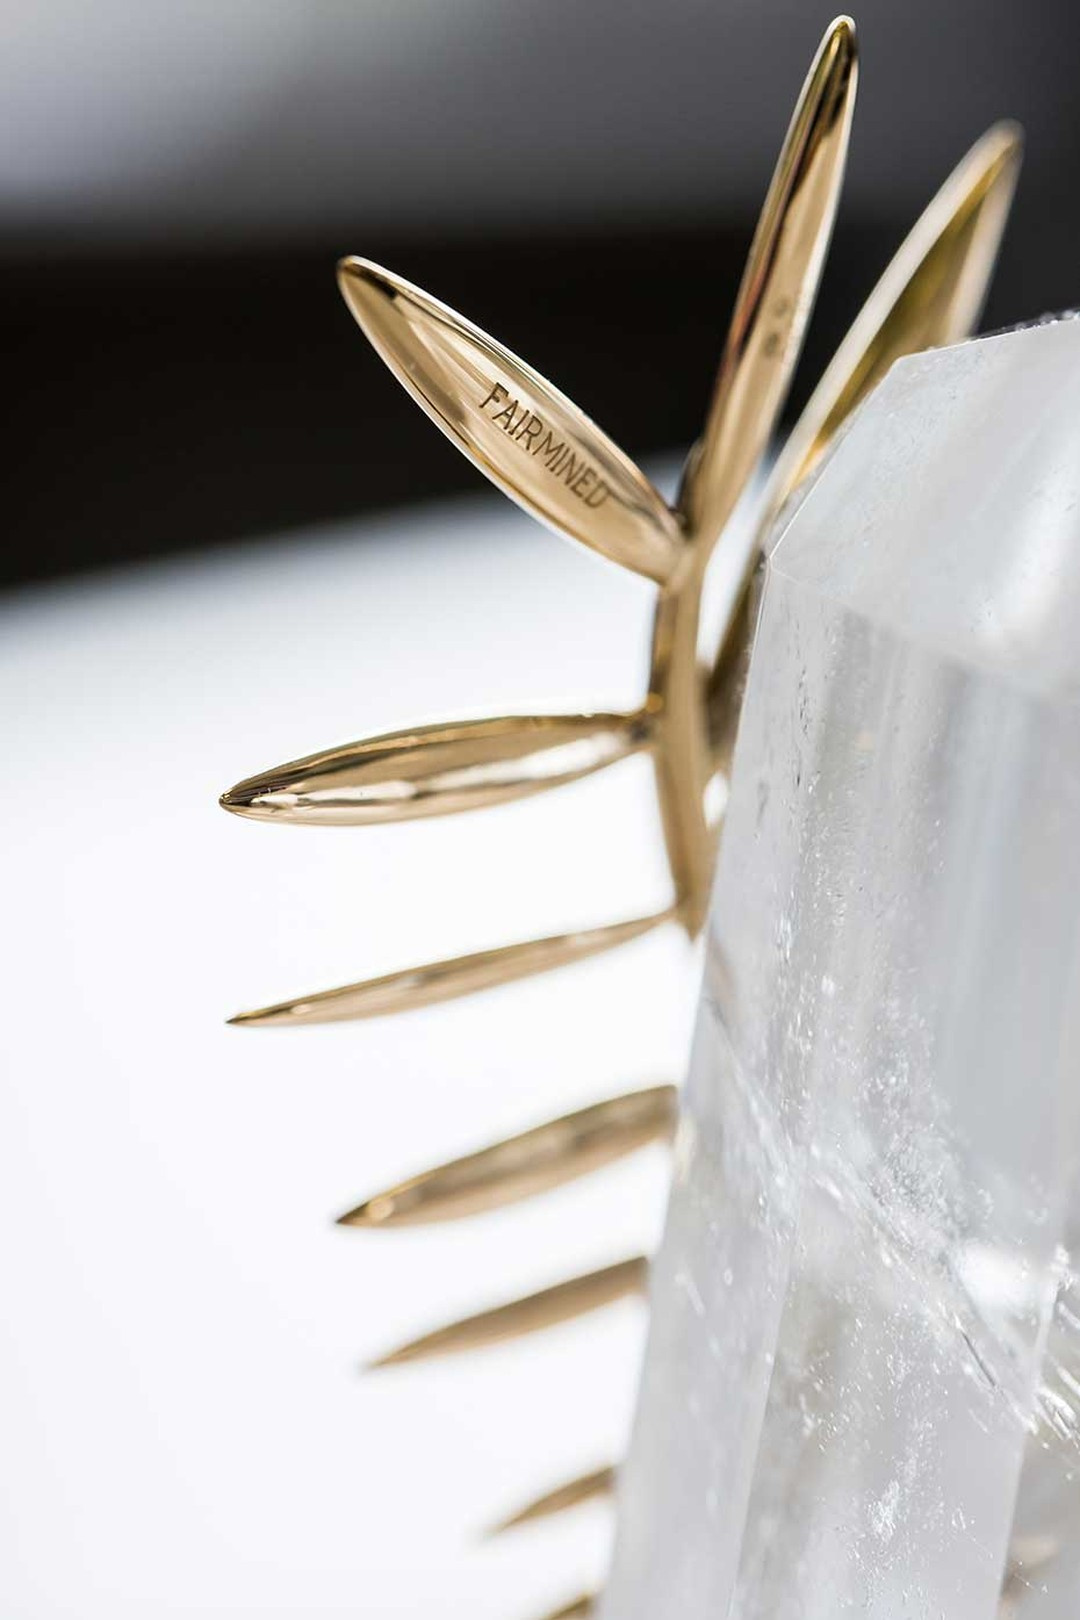 Chopard, which has been making the iconic trophy since 1998, announced in April 2014 that it had taken the decision to 'go green' at the Cannes Film Festival 2014 with the first Palme d'Or trophy in Fairmined gold.